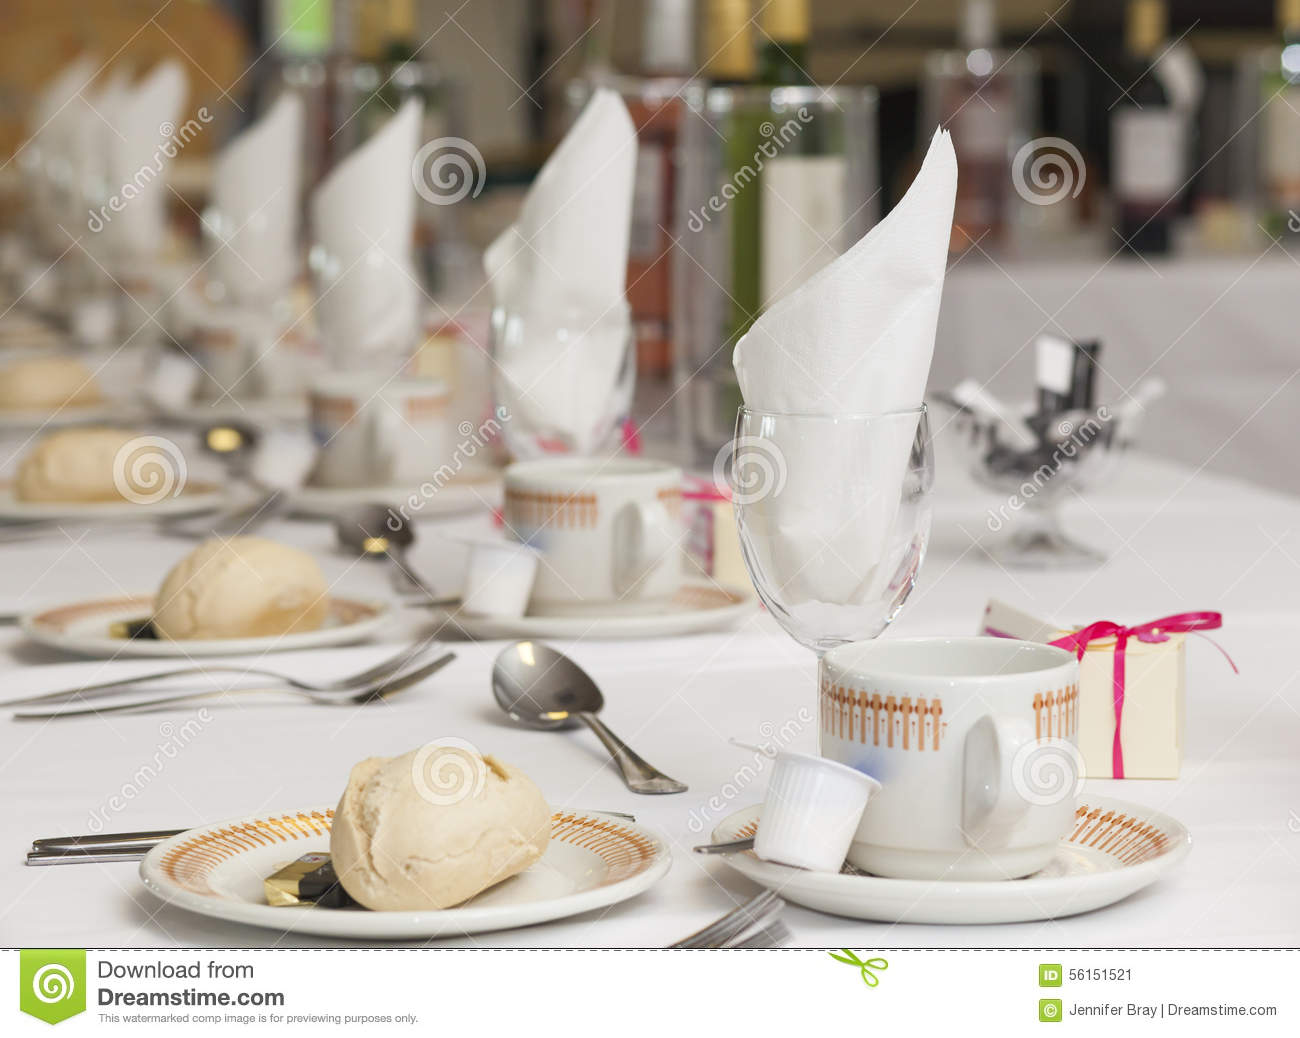 Wedding breakfast set up stock image. Image of breakfast - 56151521